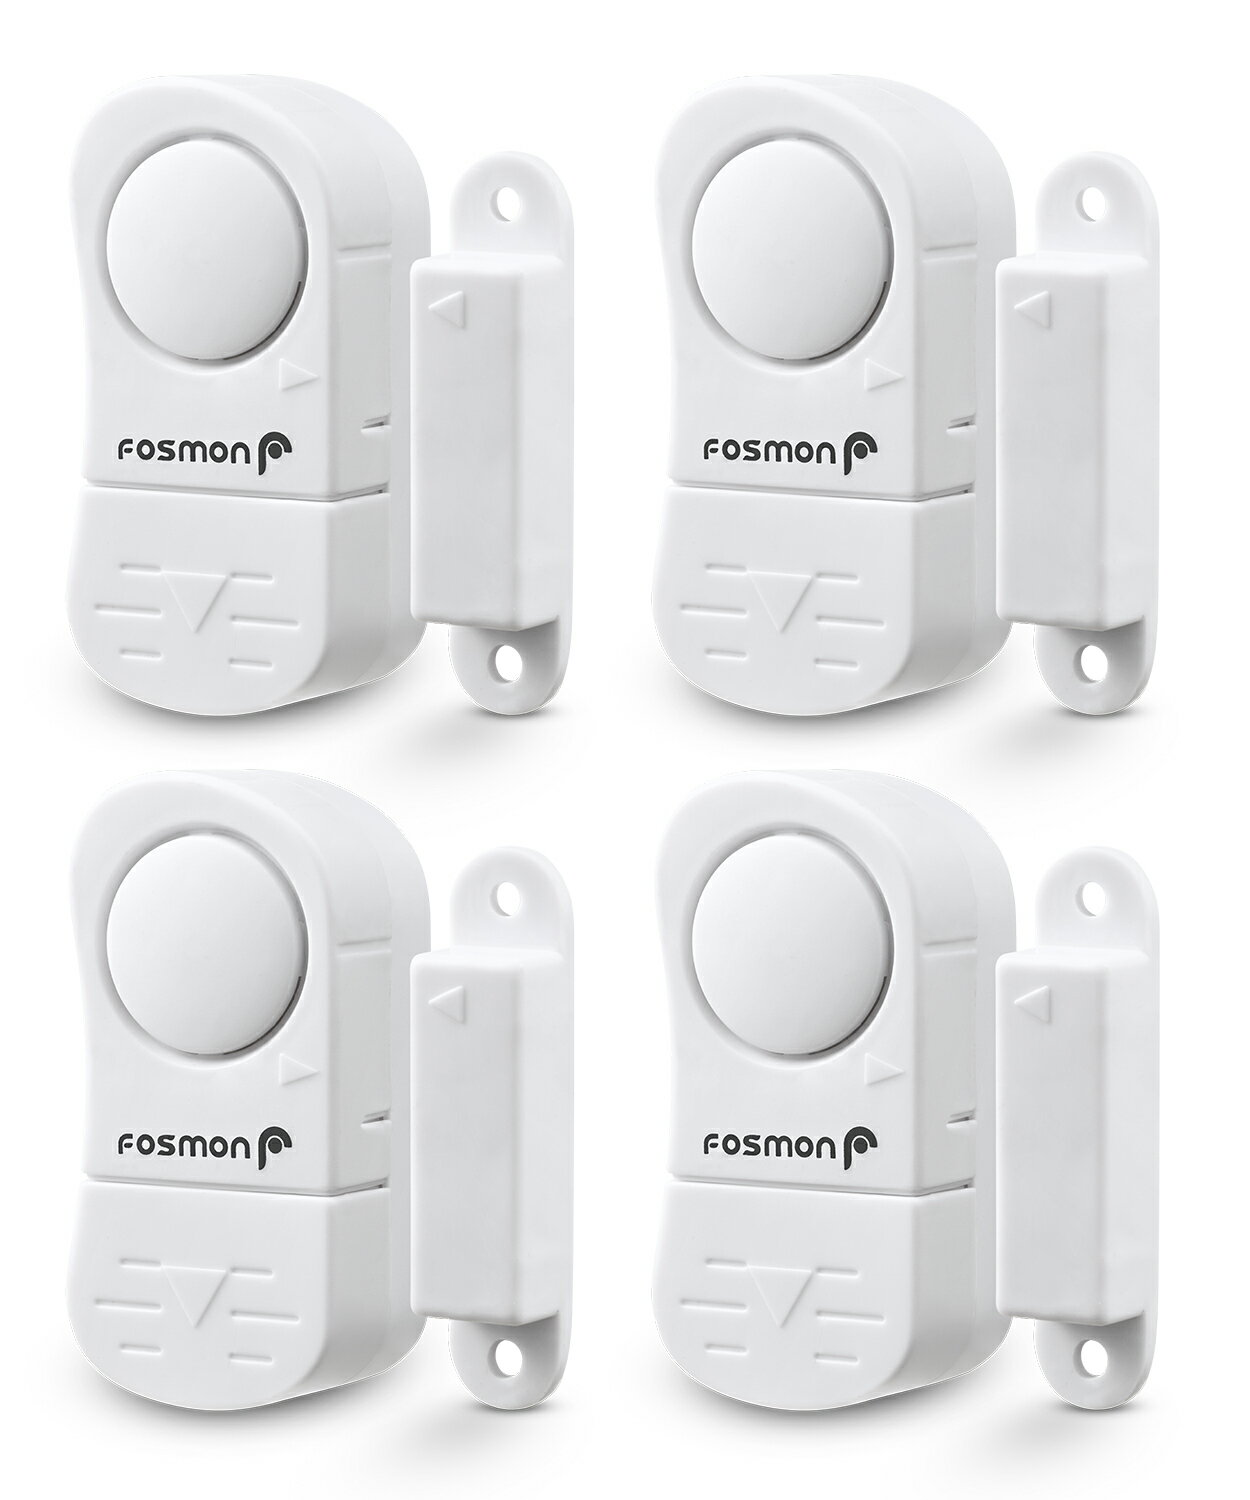 4-Pack Fosmon Wireless Door/Window Alarm Sensor with 2 Chimes